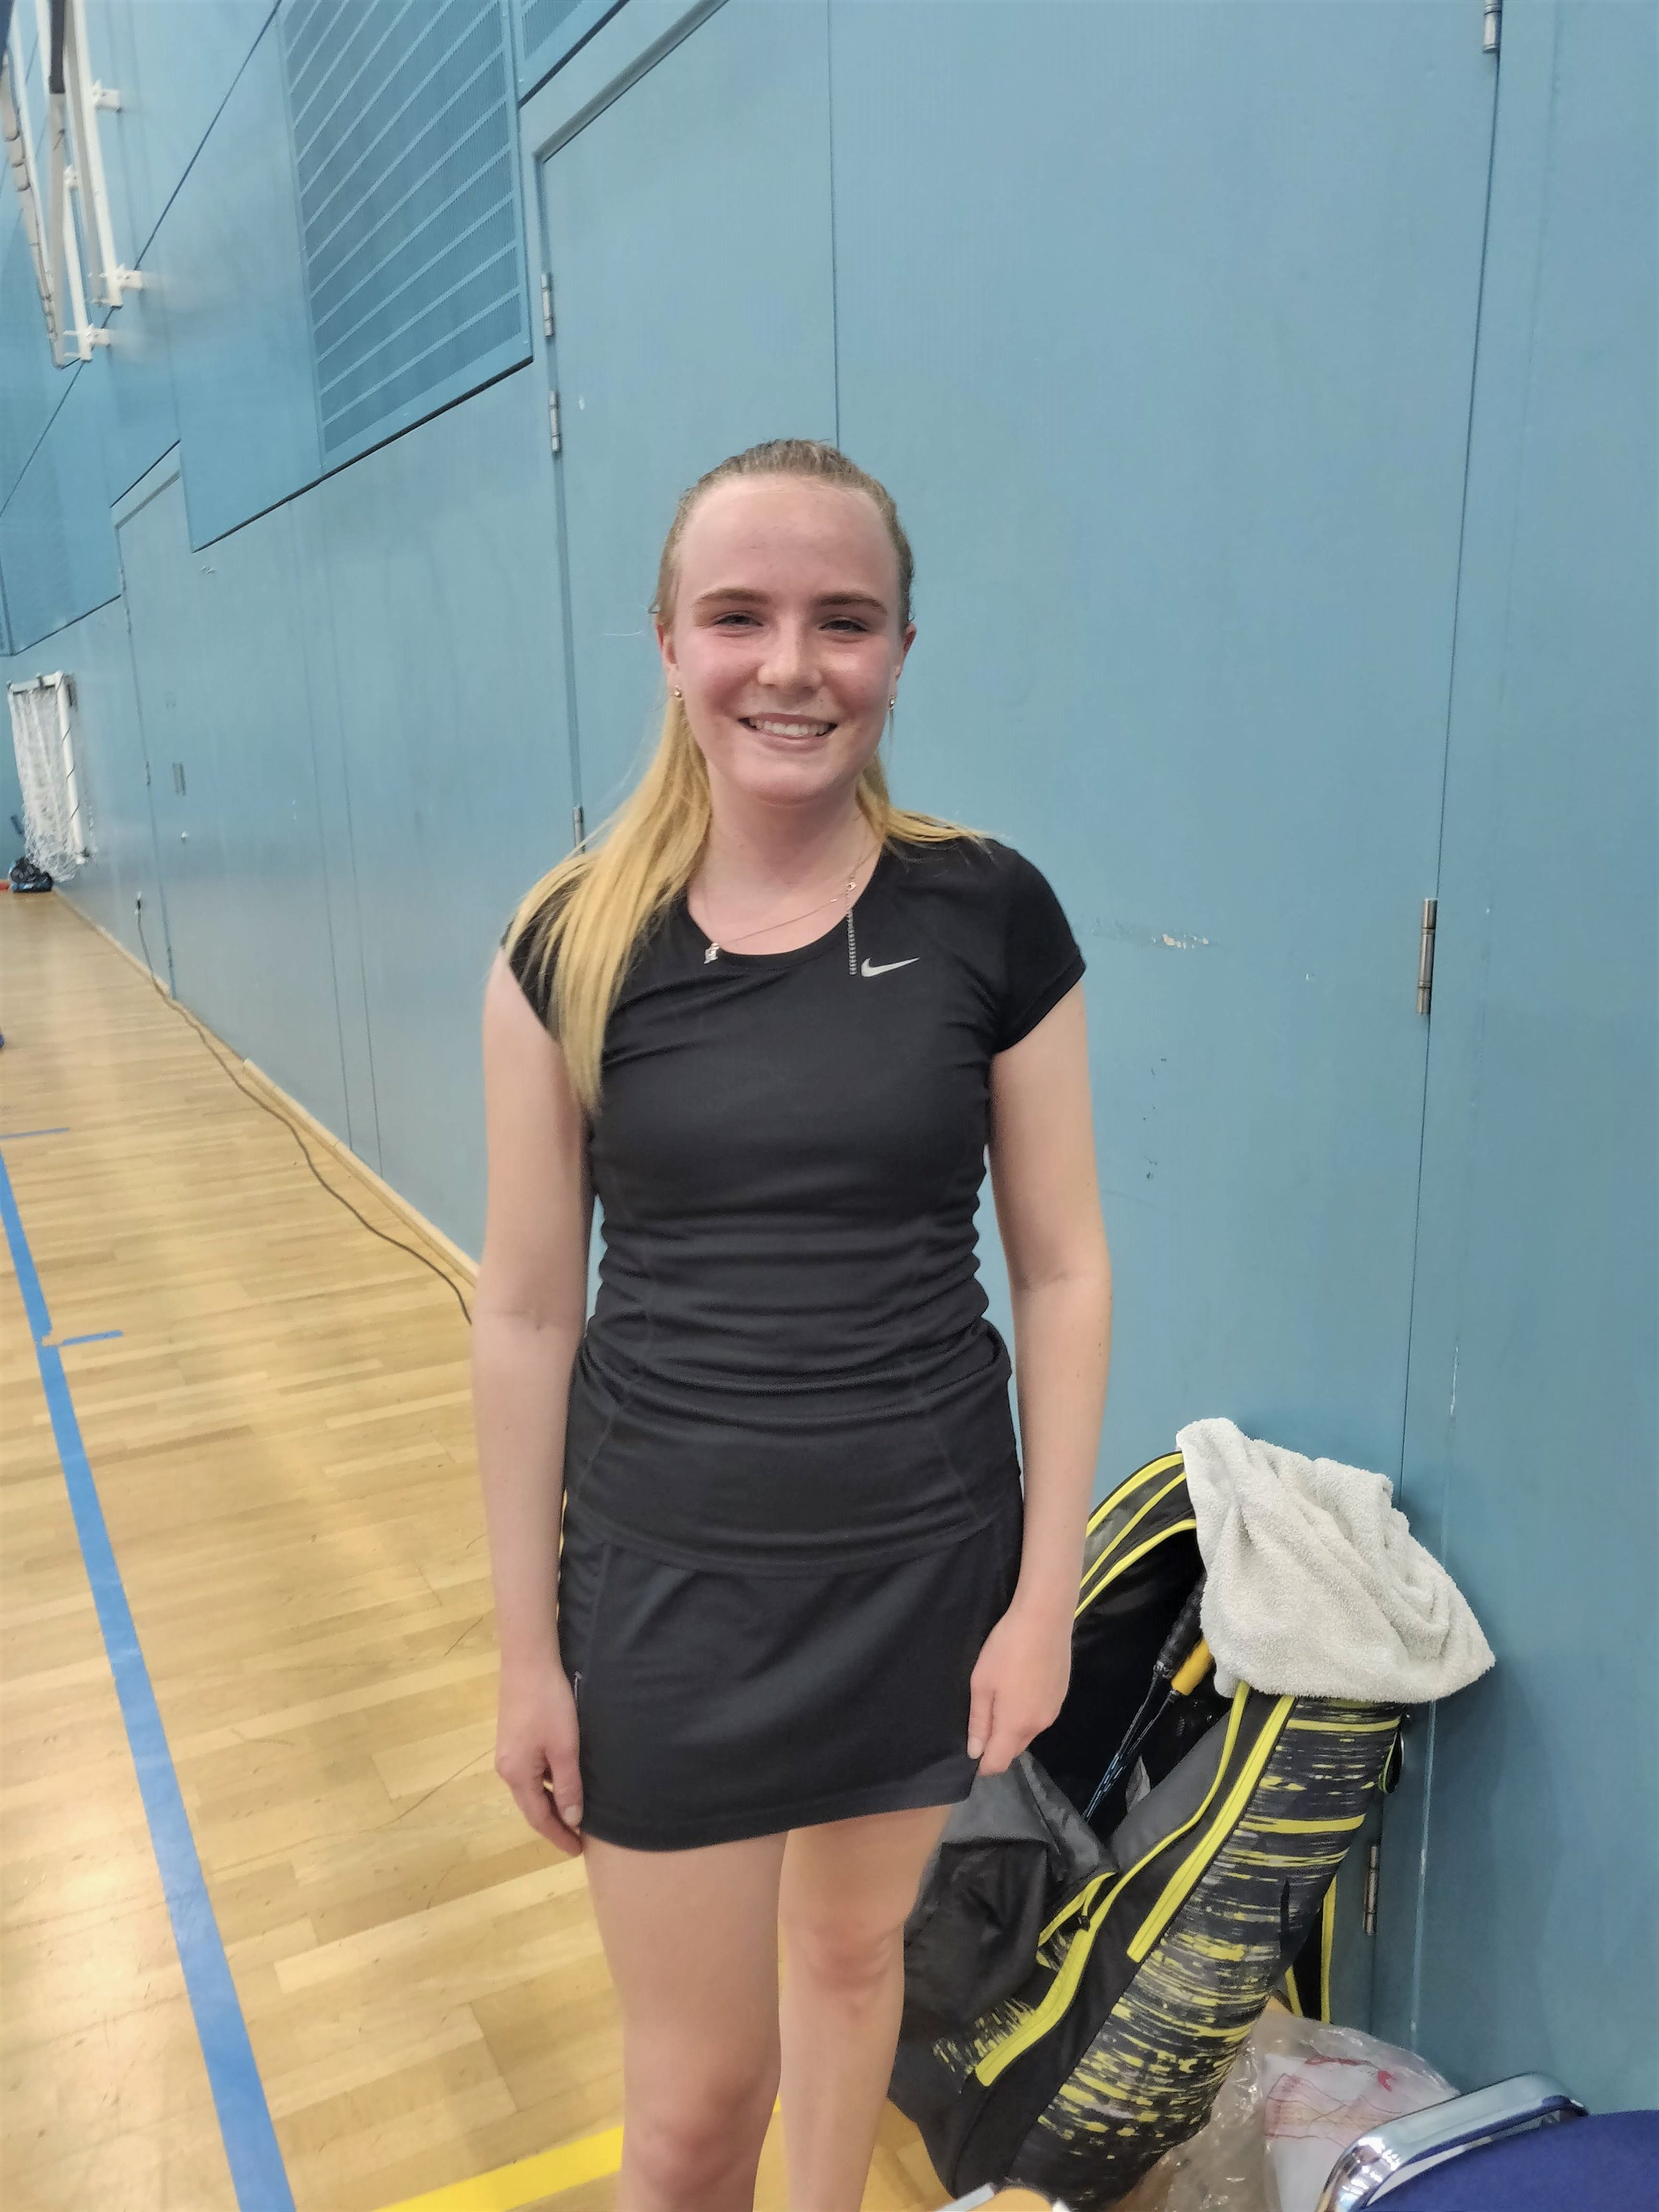 Women's Singles Winner: Holly Smith